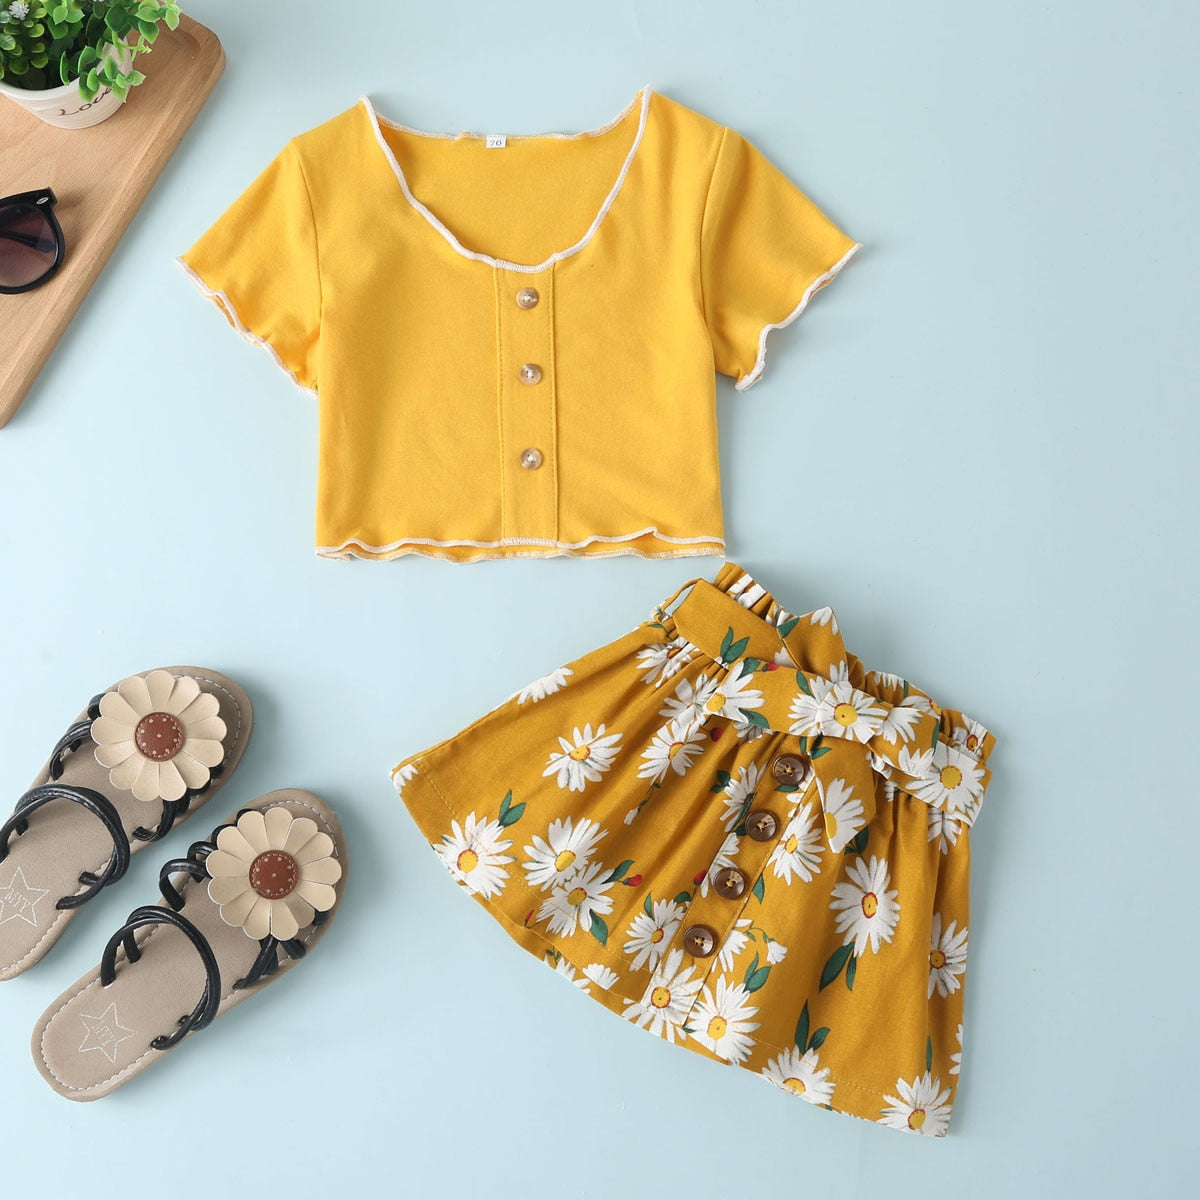 Toddler Baby Girl Casual Outfits Clothes Set Flying Sleeve Yellow Solid Ruffles Tops+Floral Skirt 2PCS Children Clothes Set - Buy Babby